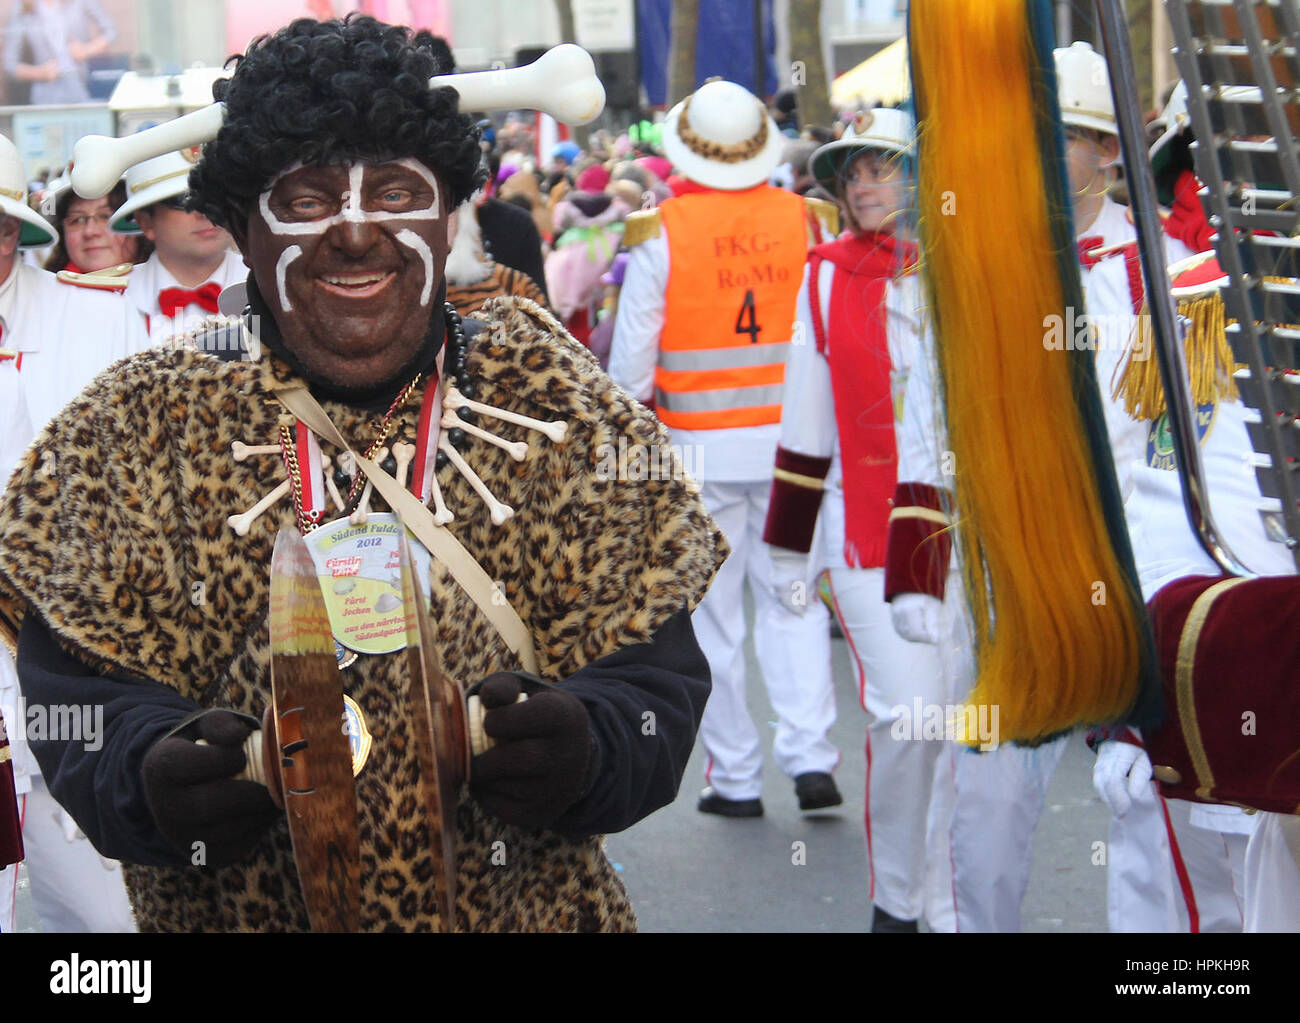 Fulda, Germany. 19th Feb, 2017. Carnival organiser Wolfgang Schuster wears a stereotypical 'African' costume - Stock Image